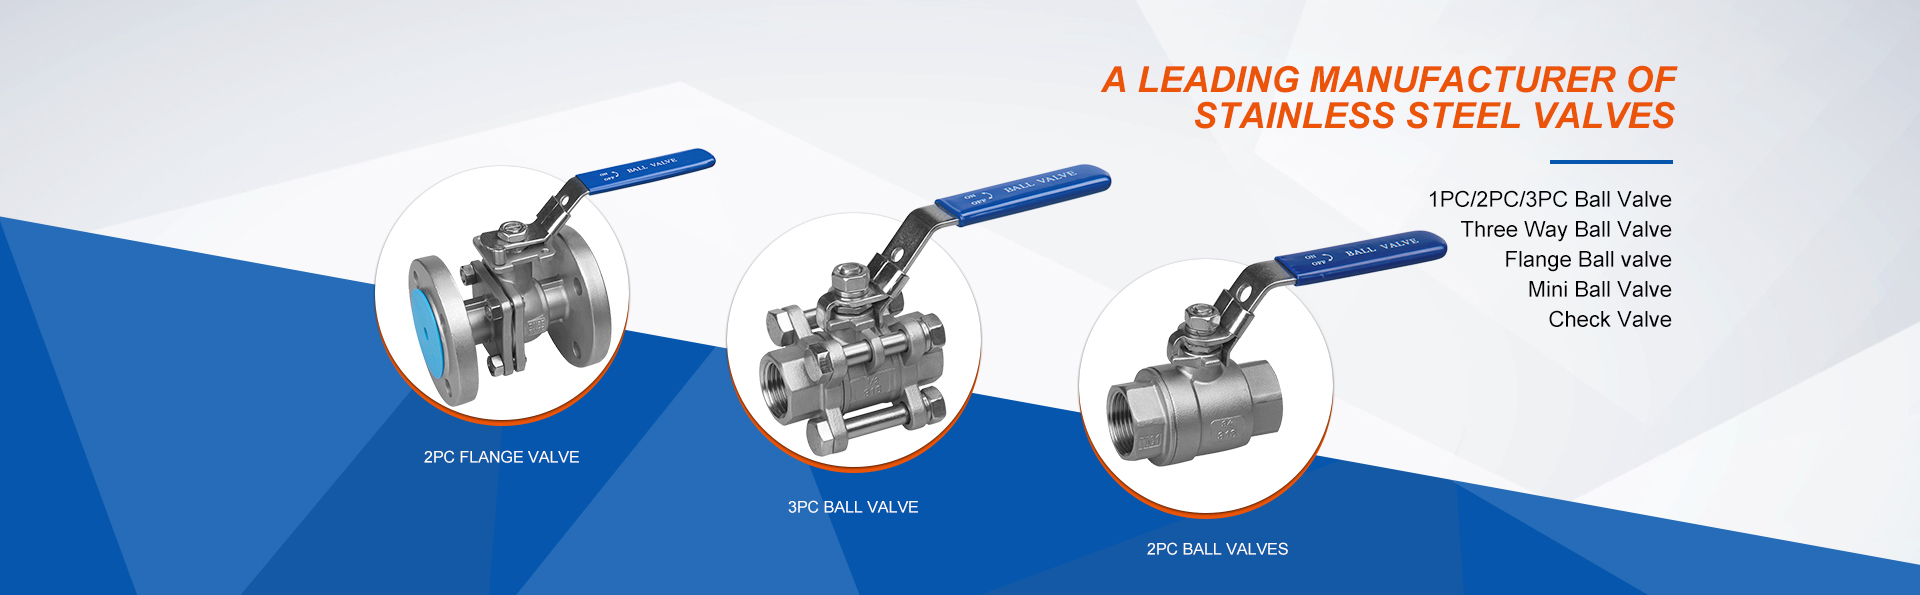 A leading manufacturer of stainless steel valves